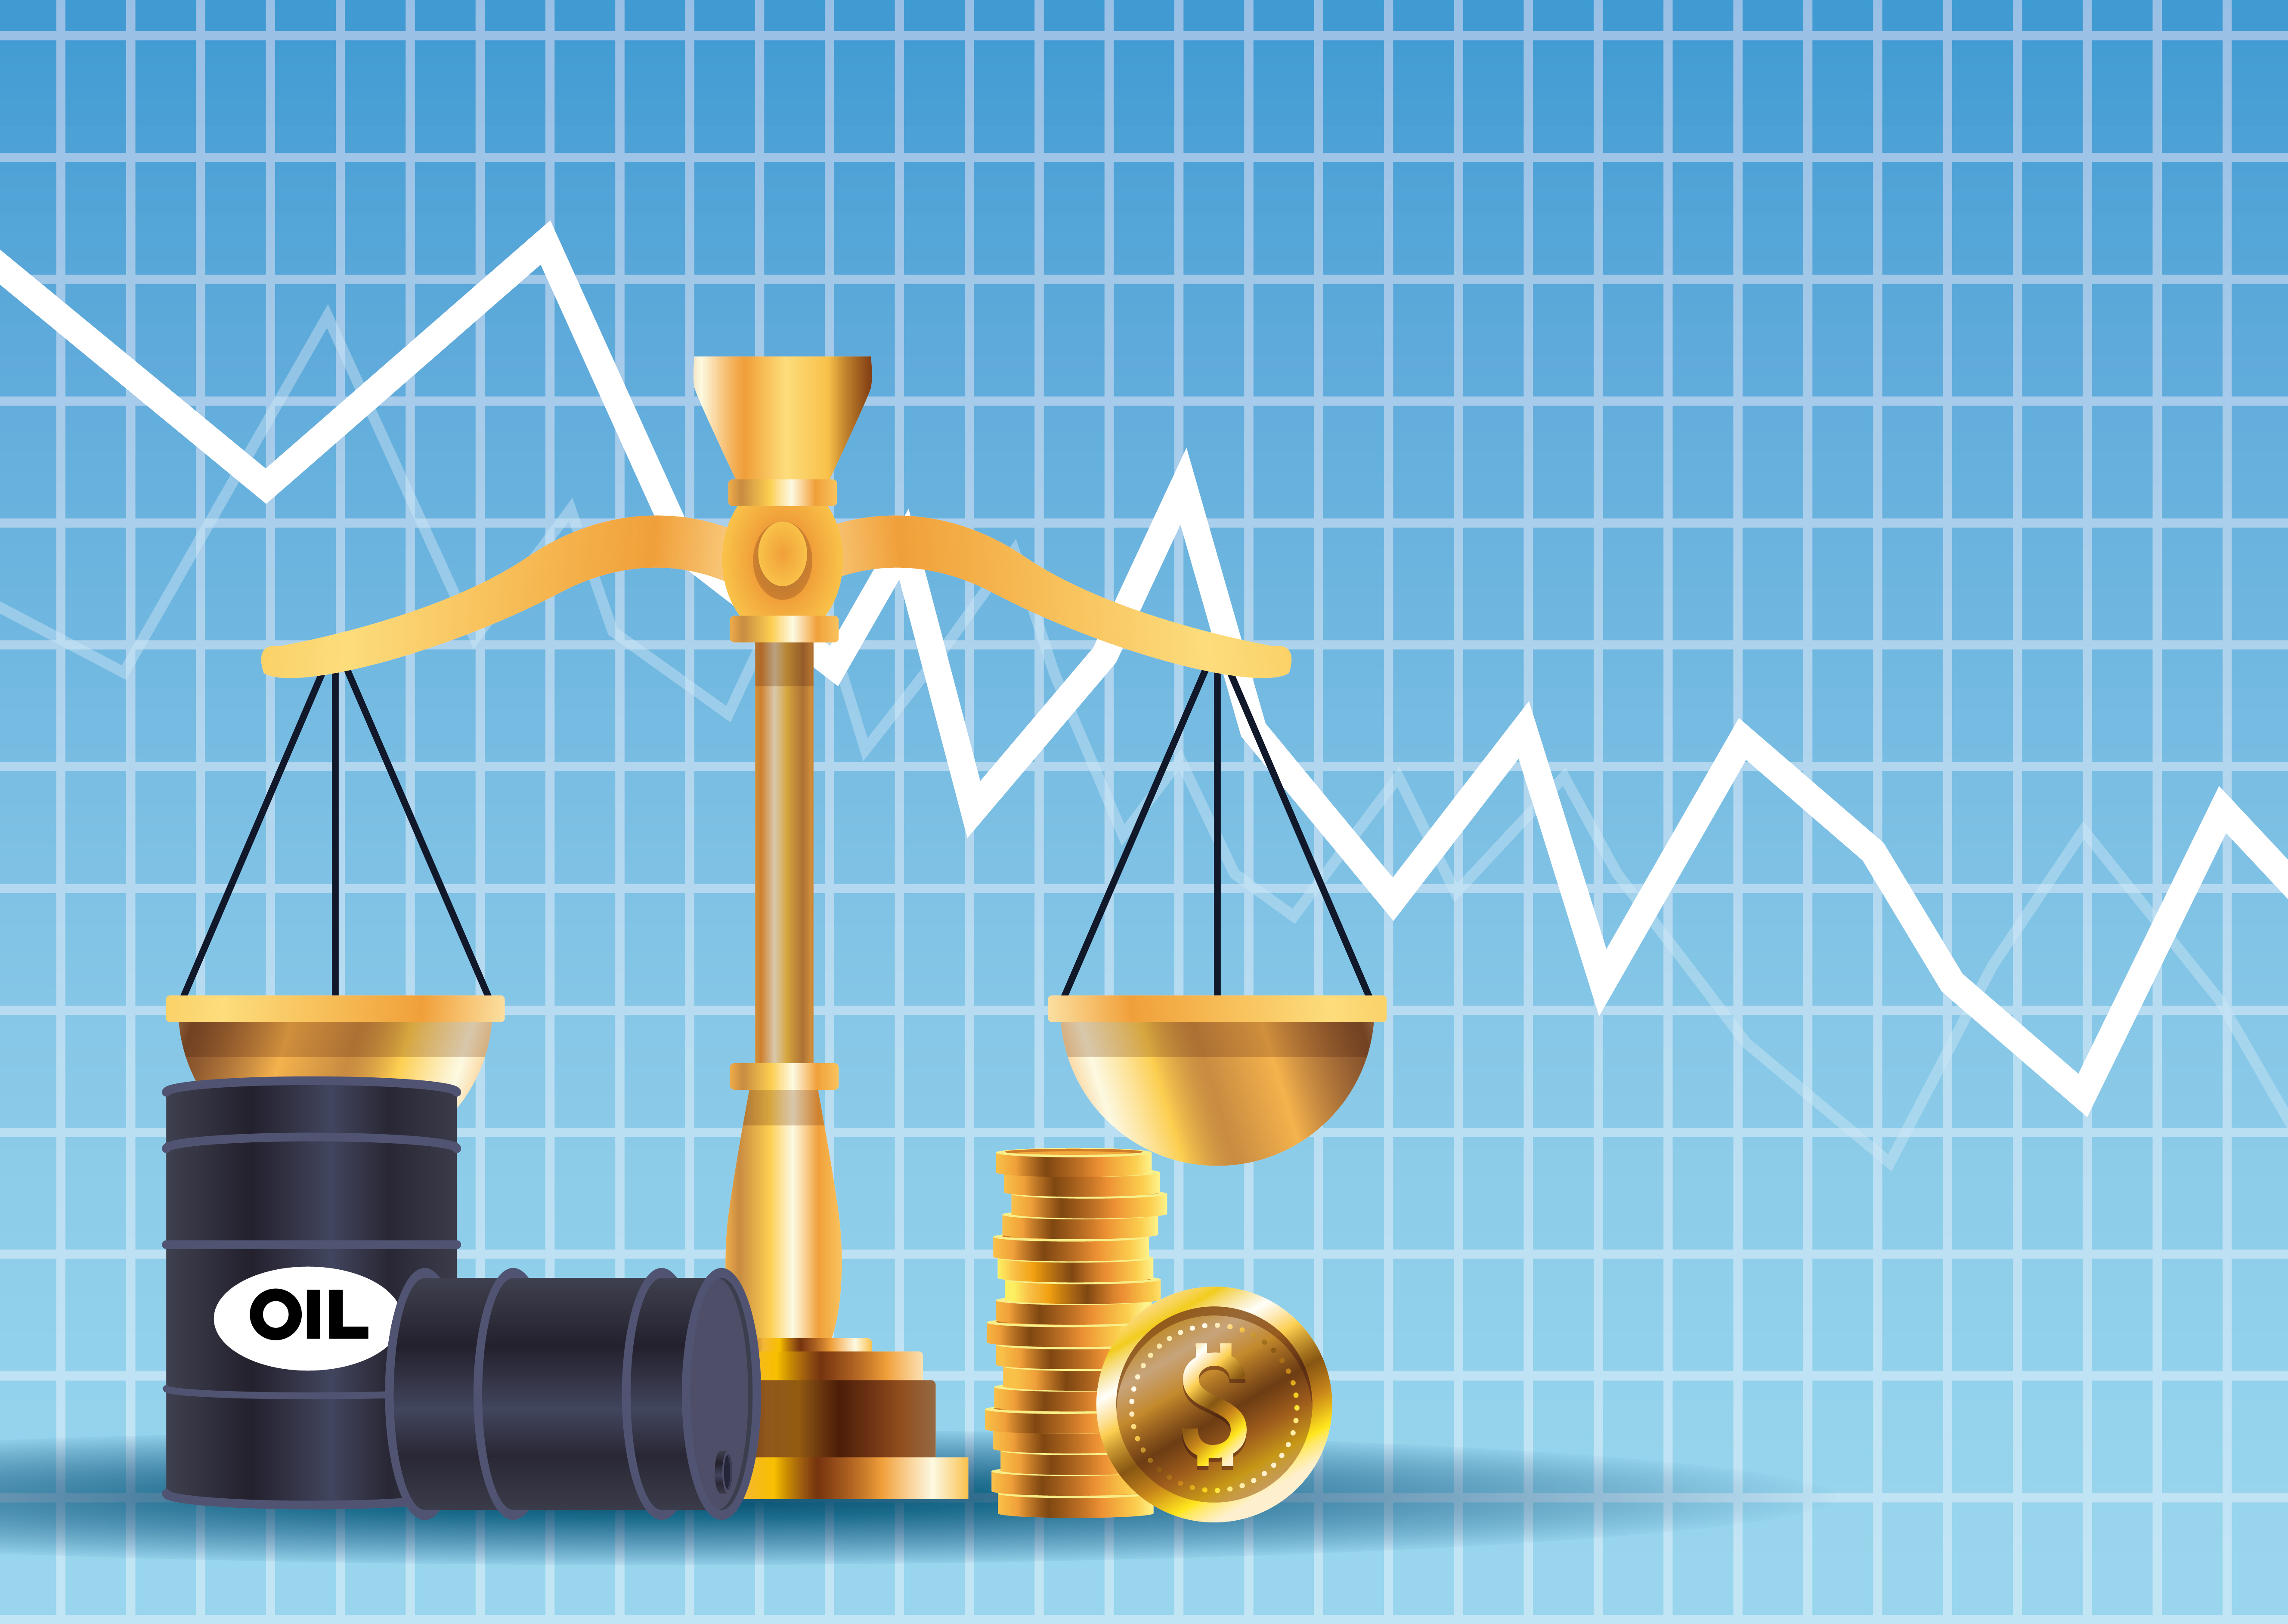 Oil price market with barrels and balance vector